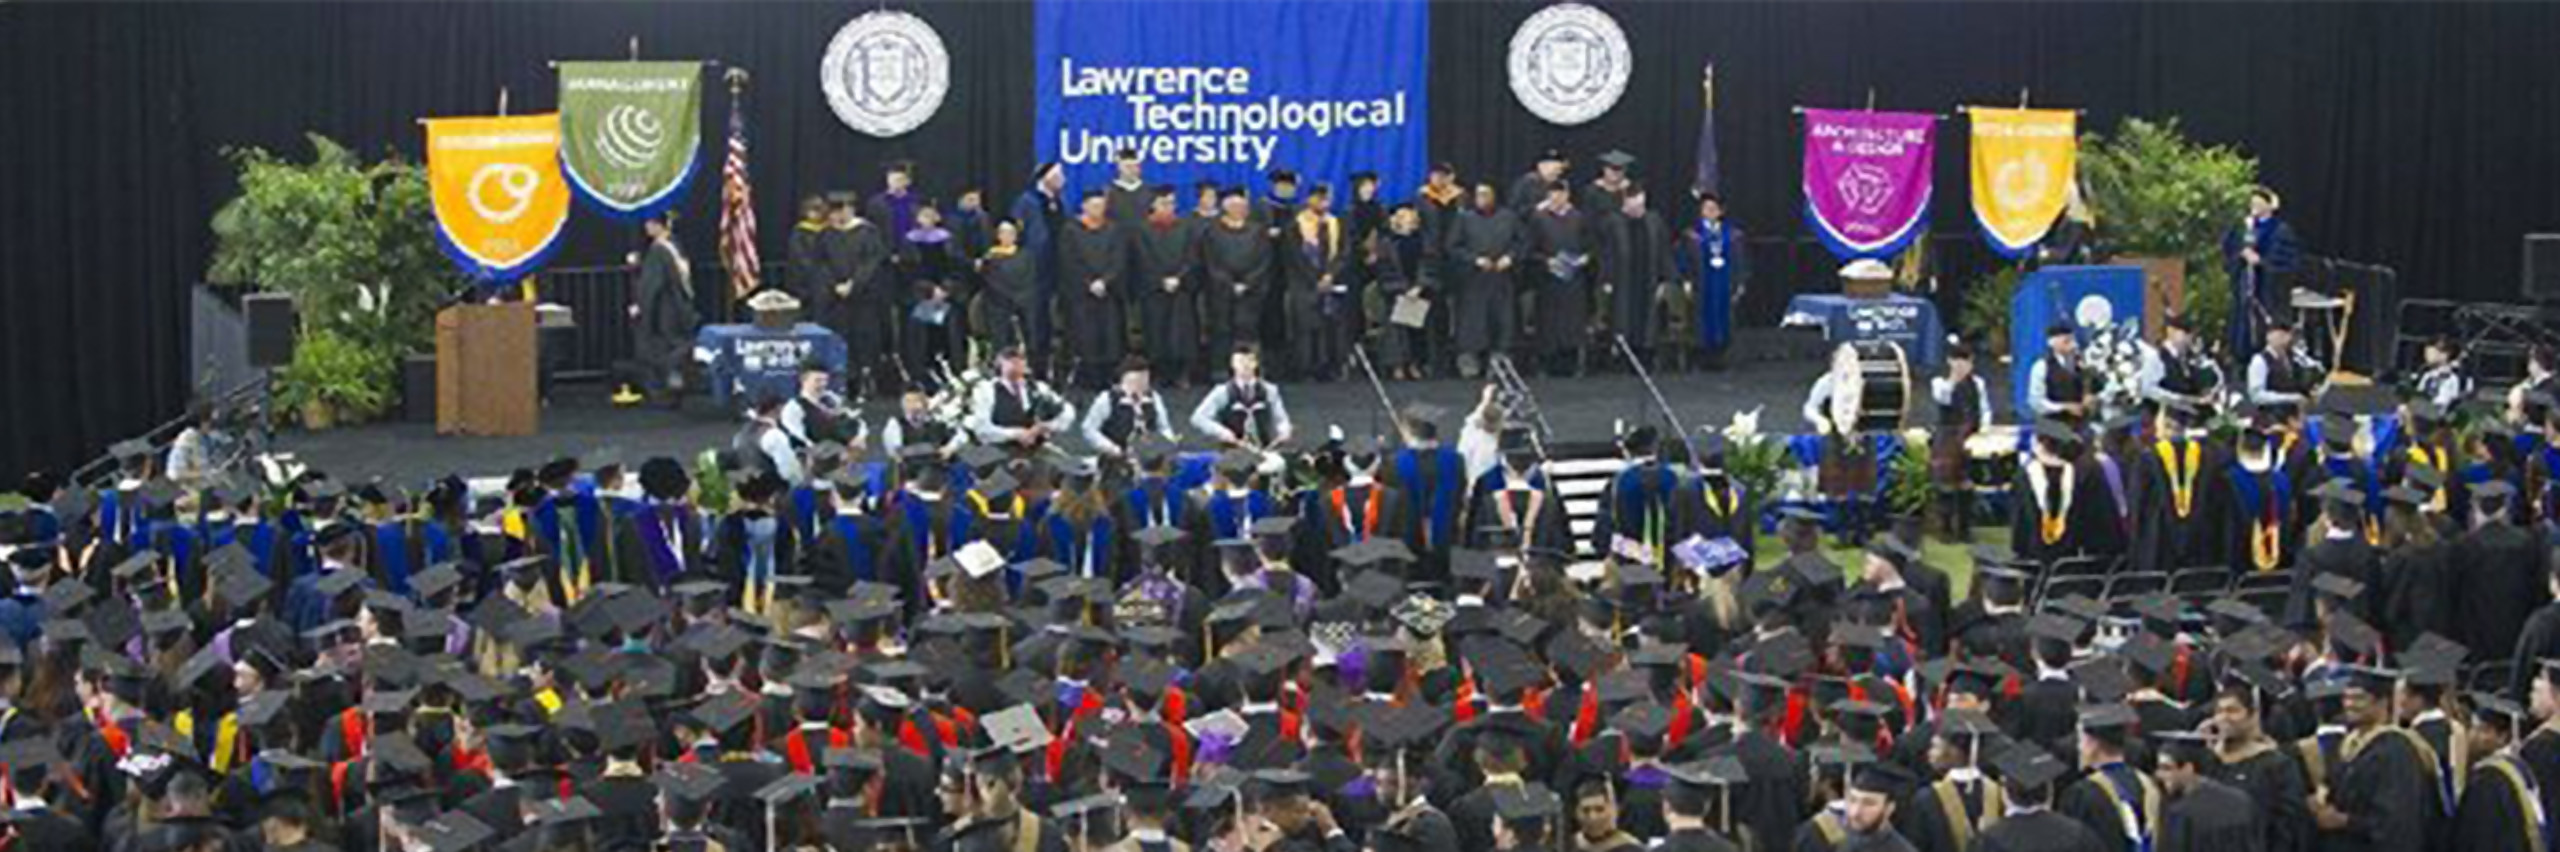 LTU Commencement Exercises